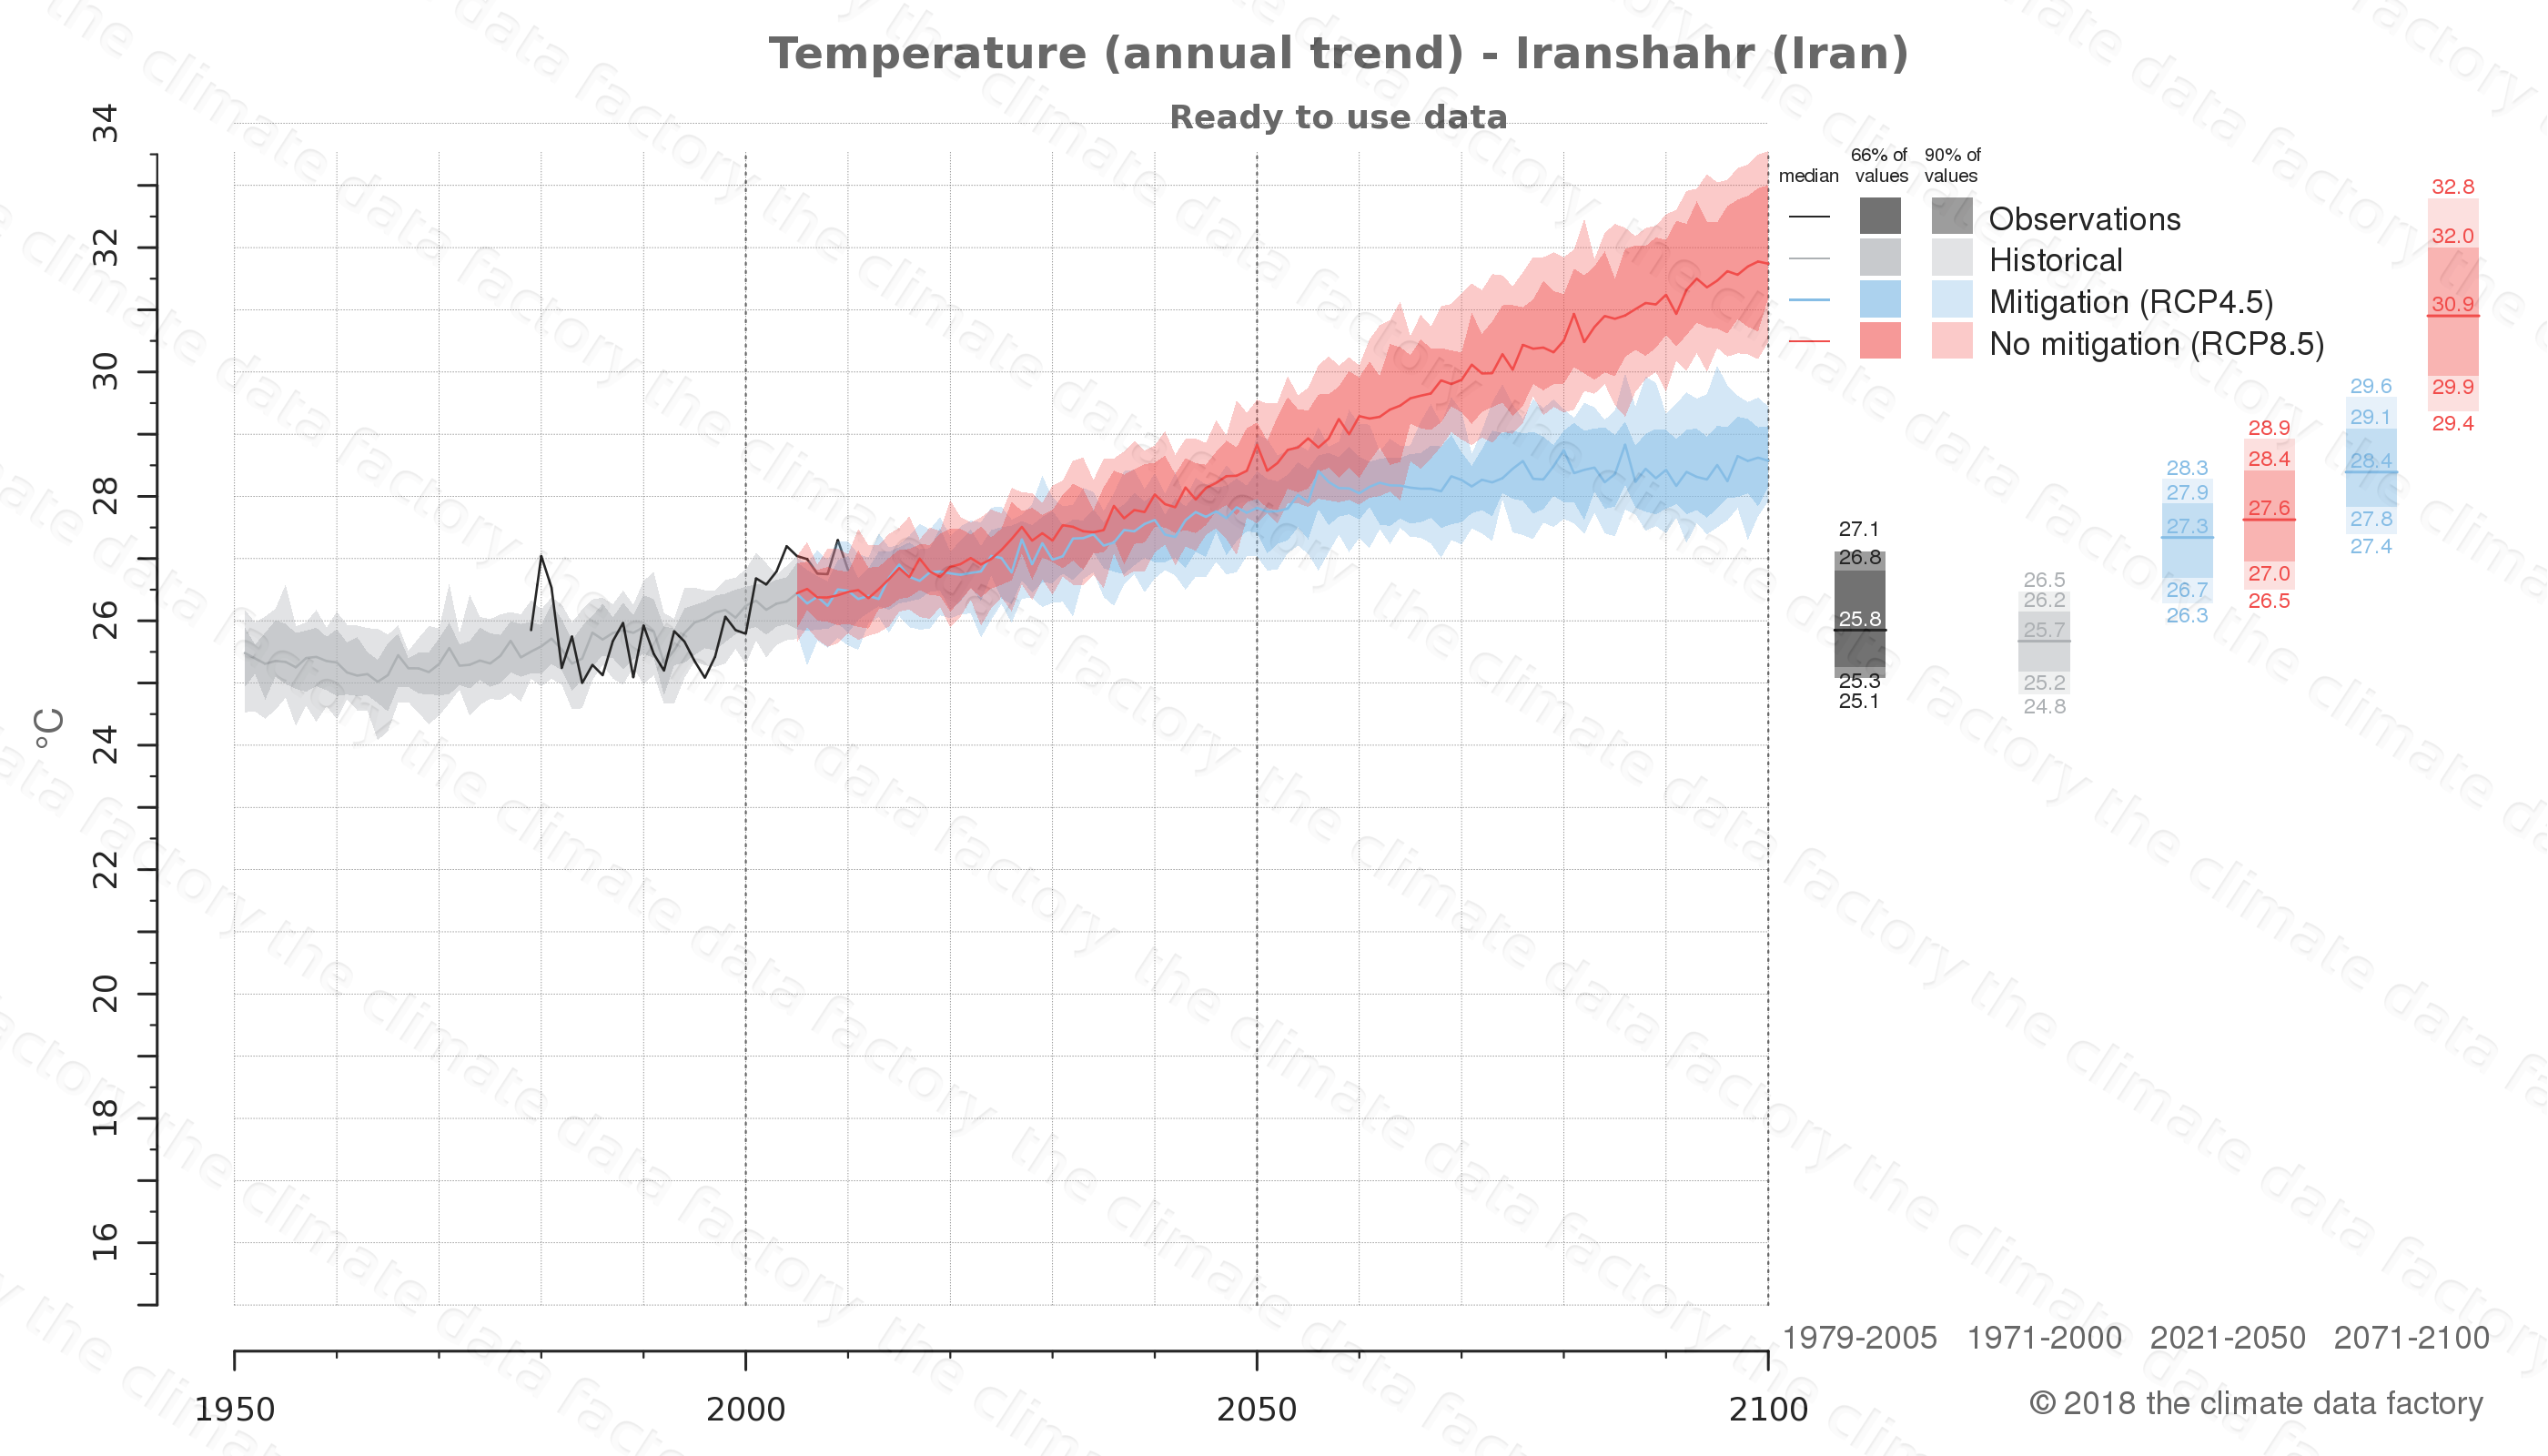 climate change data policy adaptation climate graph city data temperature iranshahr iran